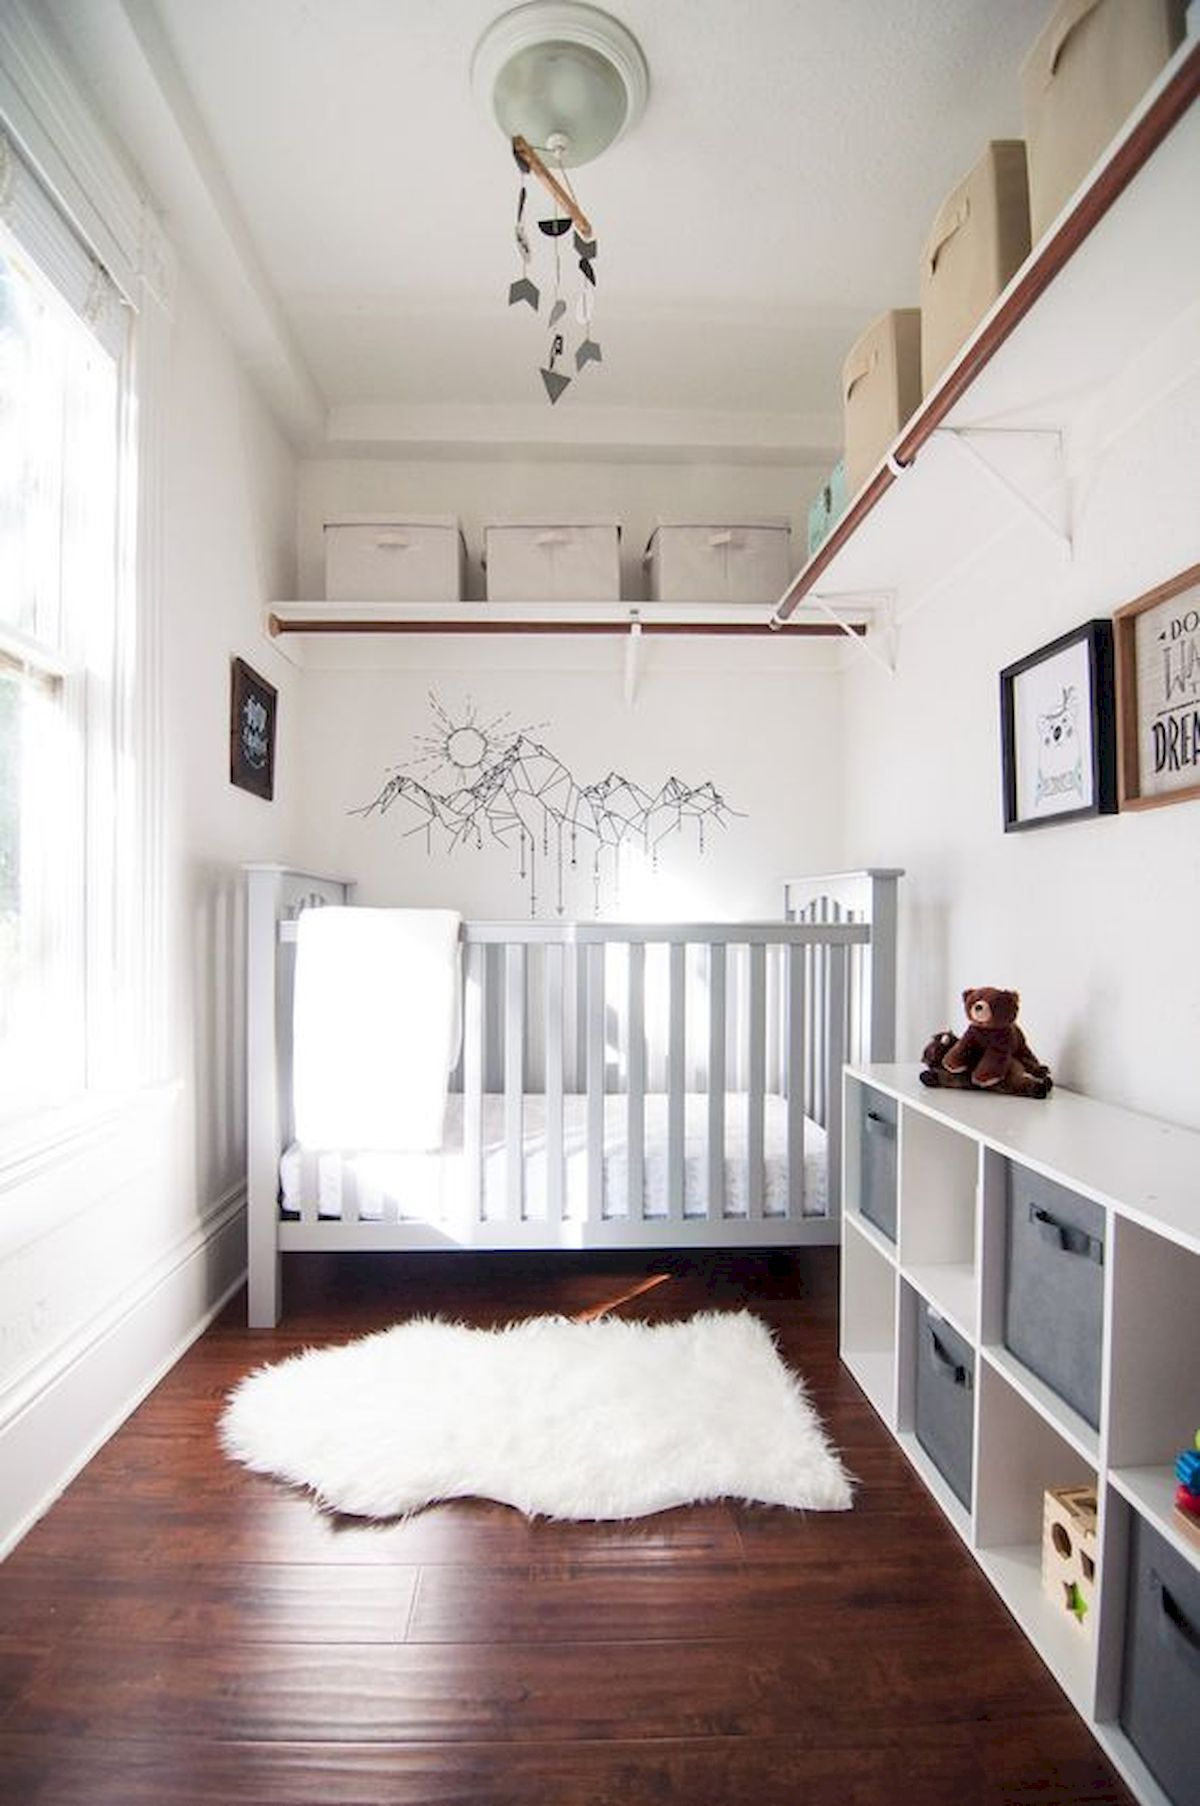 Cool 23 Awesome Small Nursery Design Ideas Https Coachdecor Com